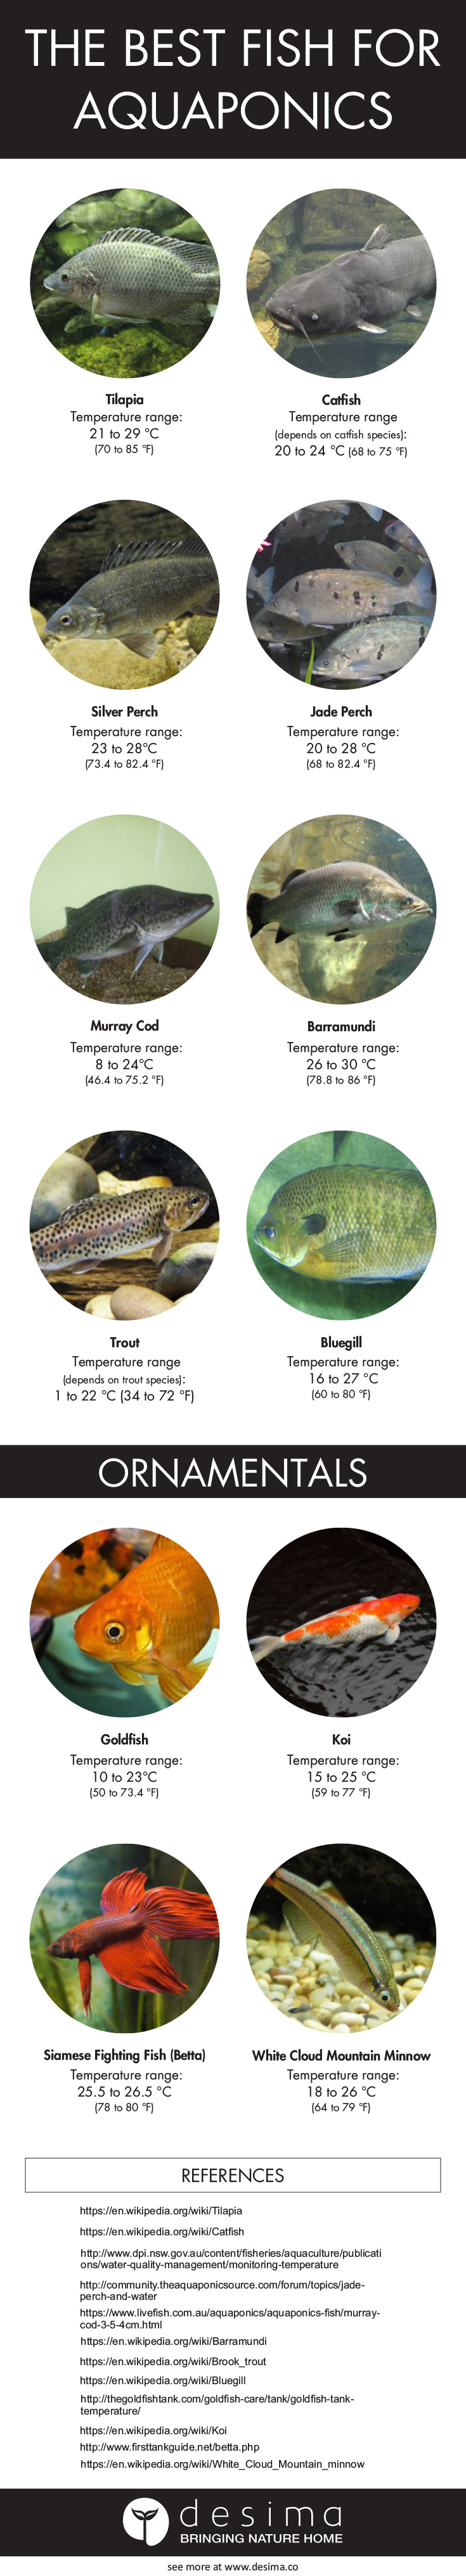 The best fish for aquaponics infographic (Updated 2017)